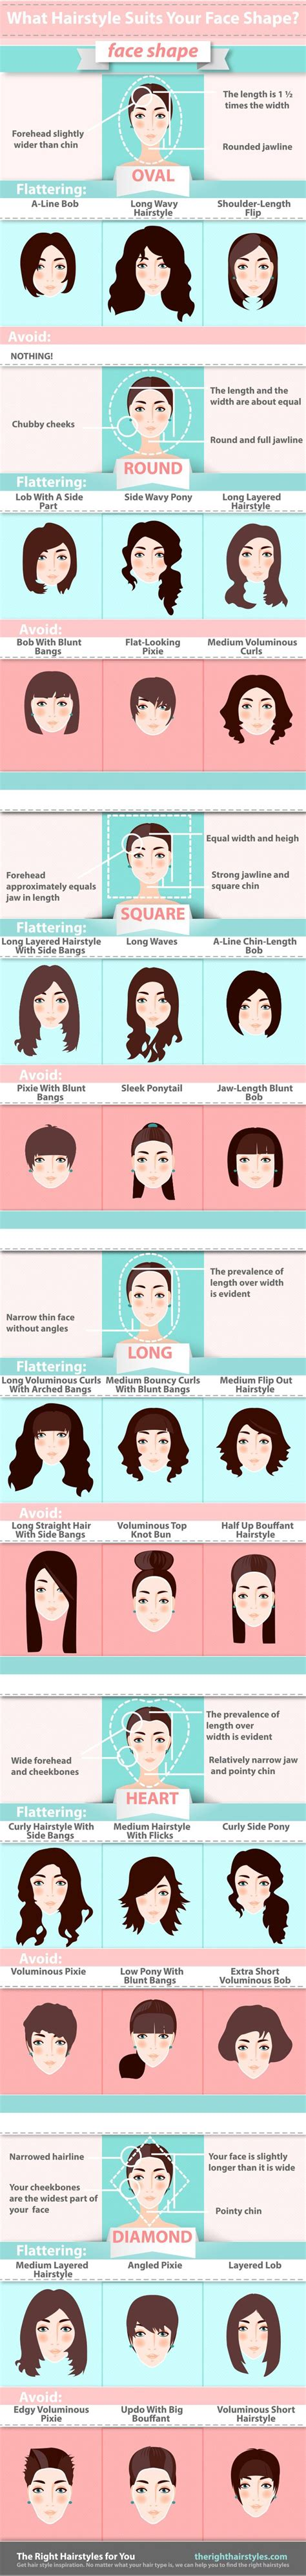 best haircuts lemon shaped head 606 best images about hairstyles on pinterest